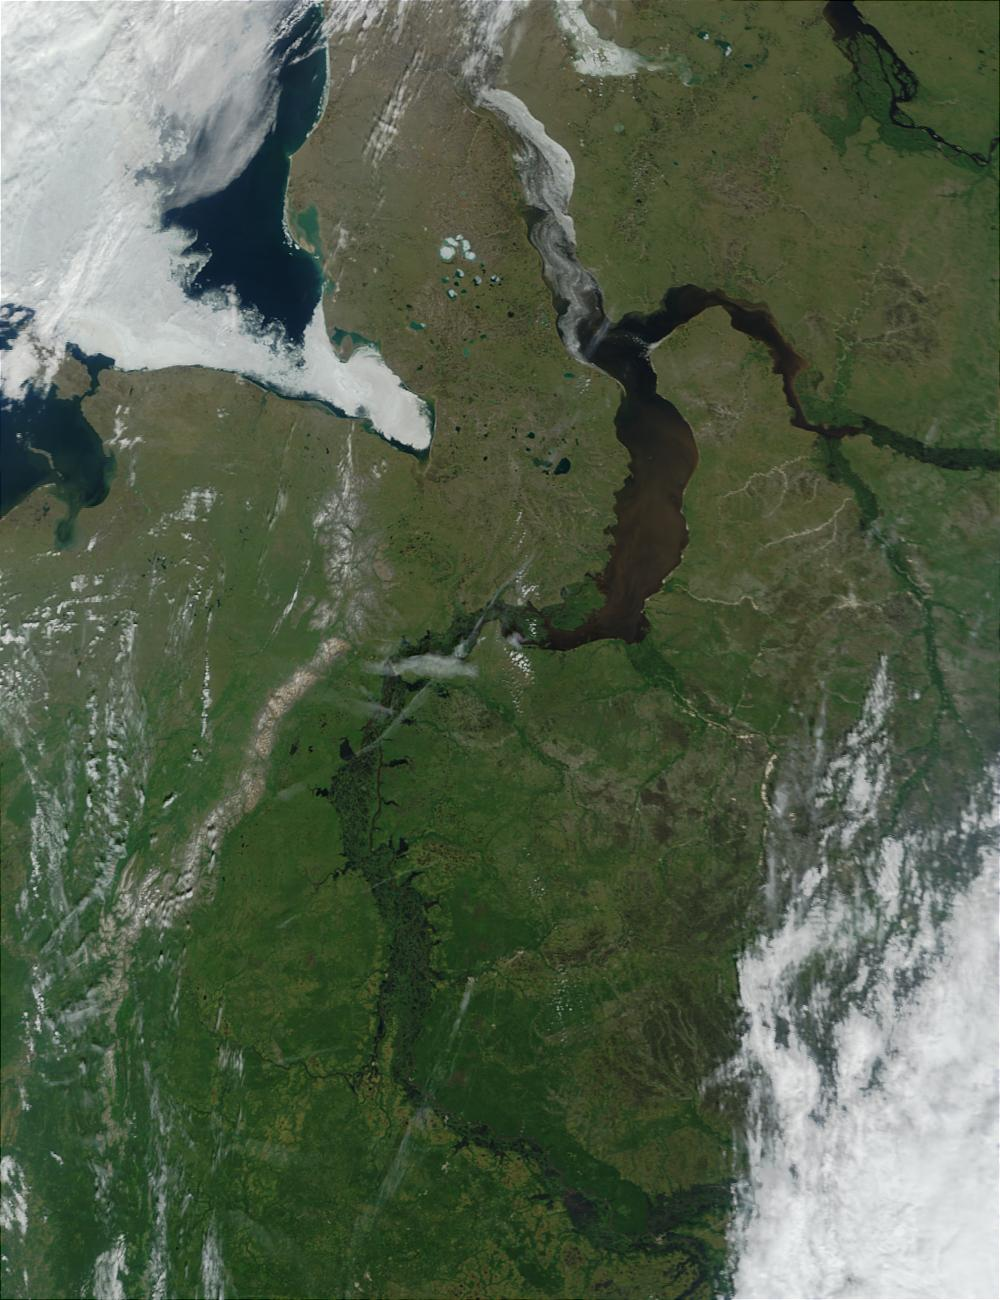 Ural Mountains and Mouth of the Ob River (Obskaya Guba), Northern Russia - related image preview